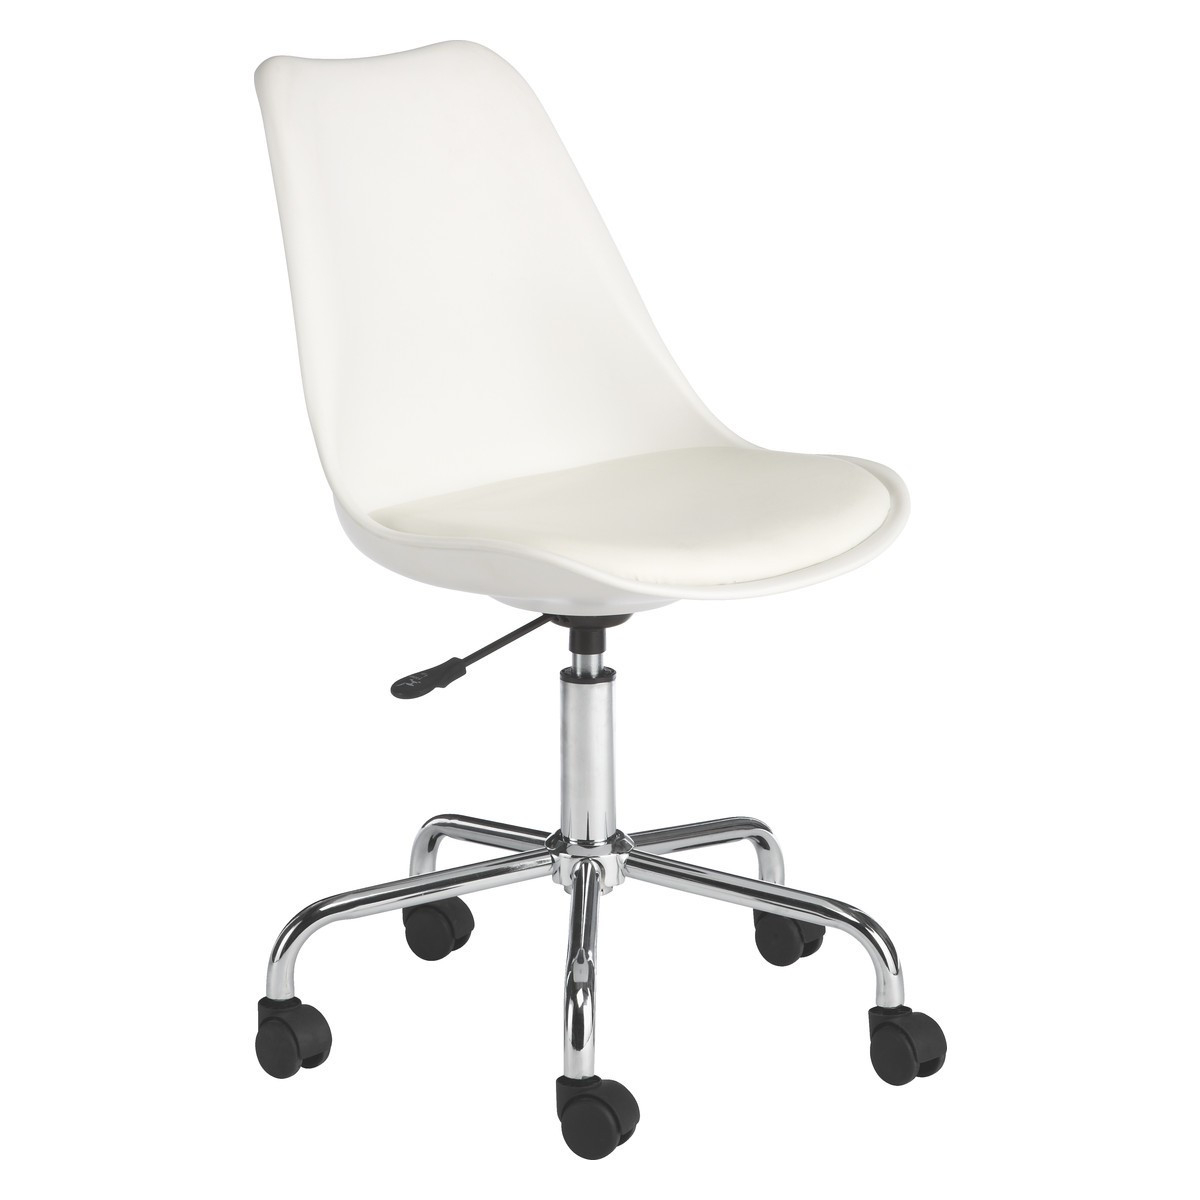 Best ideas about White Office Chair . Save or Pin White office chairs white tufted chair office white Now.